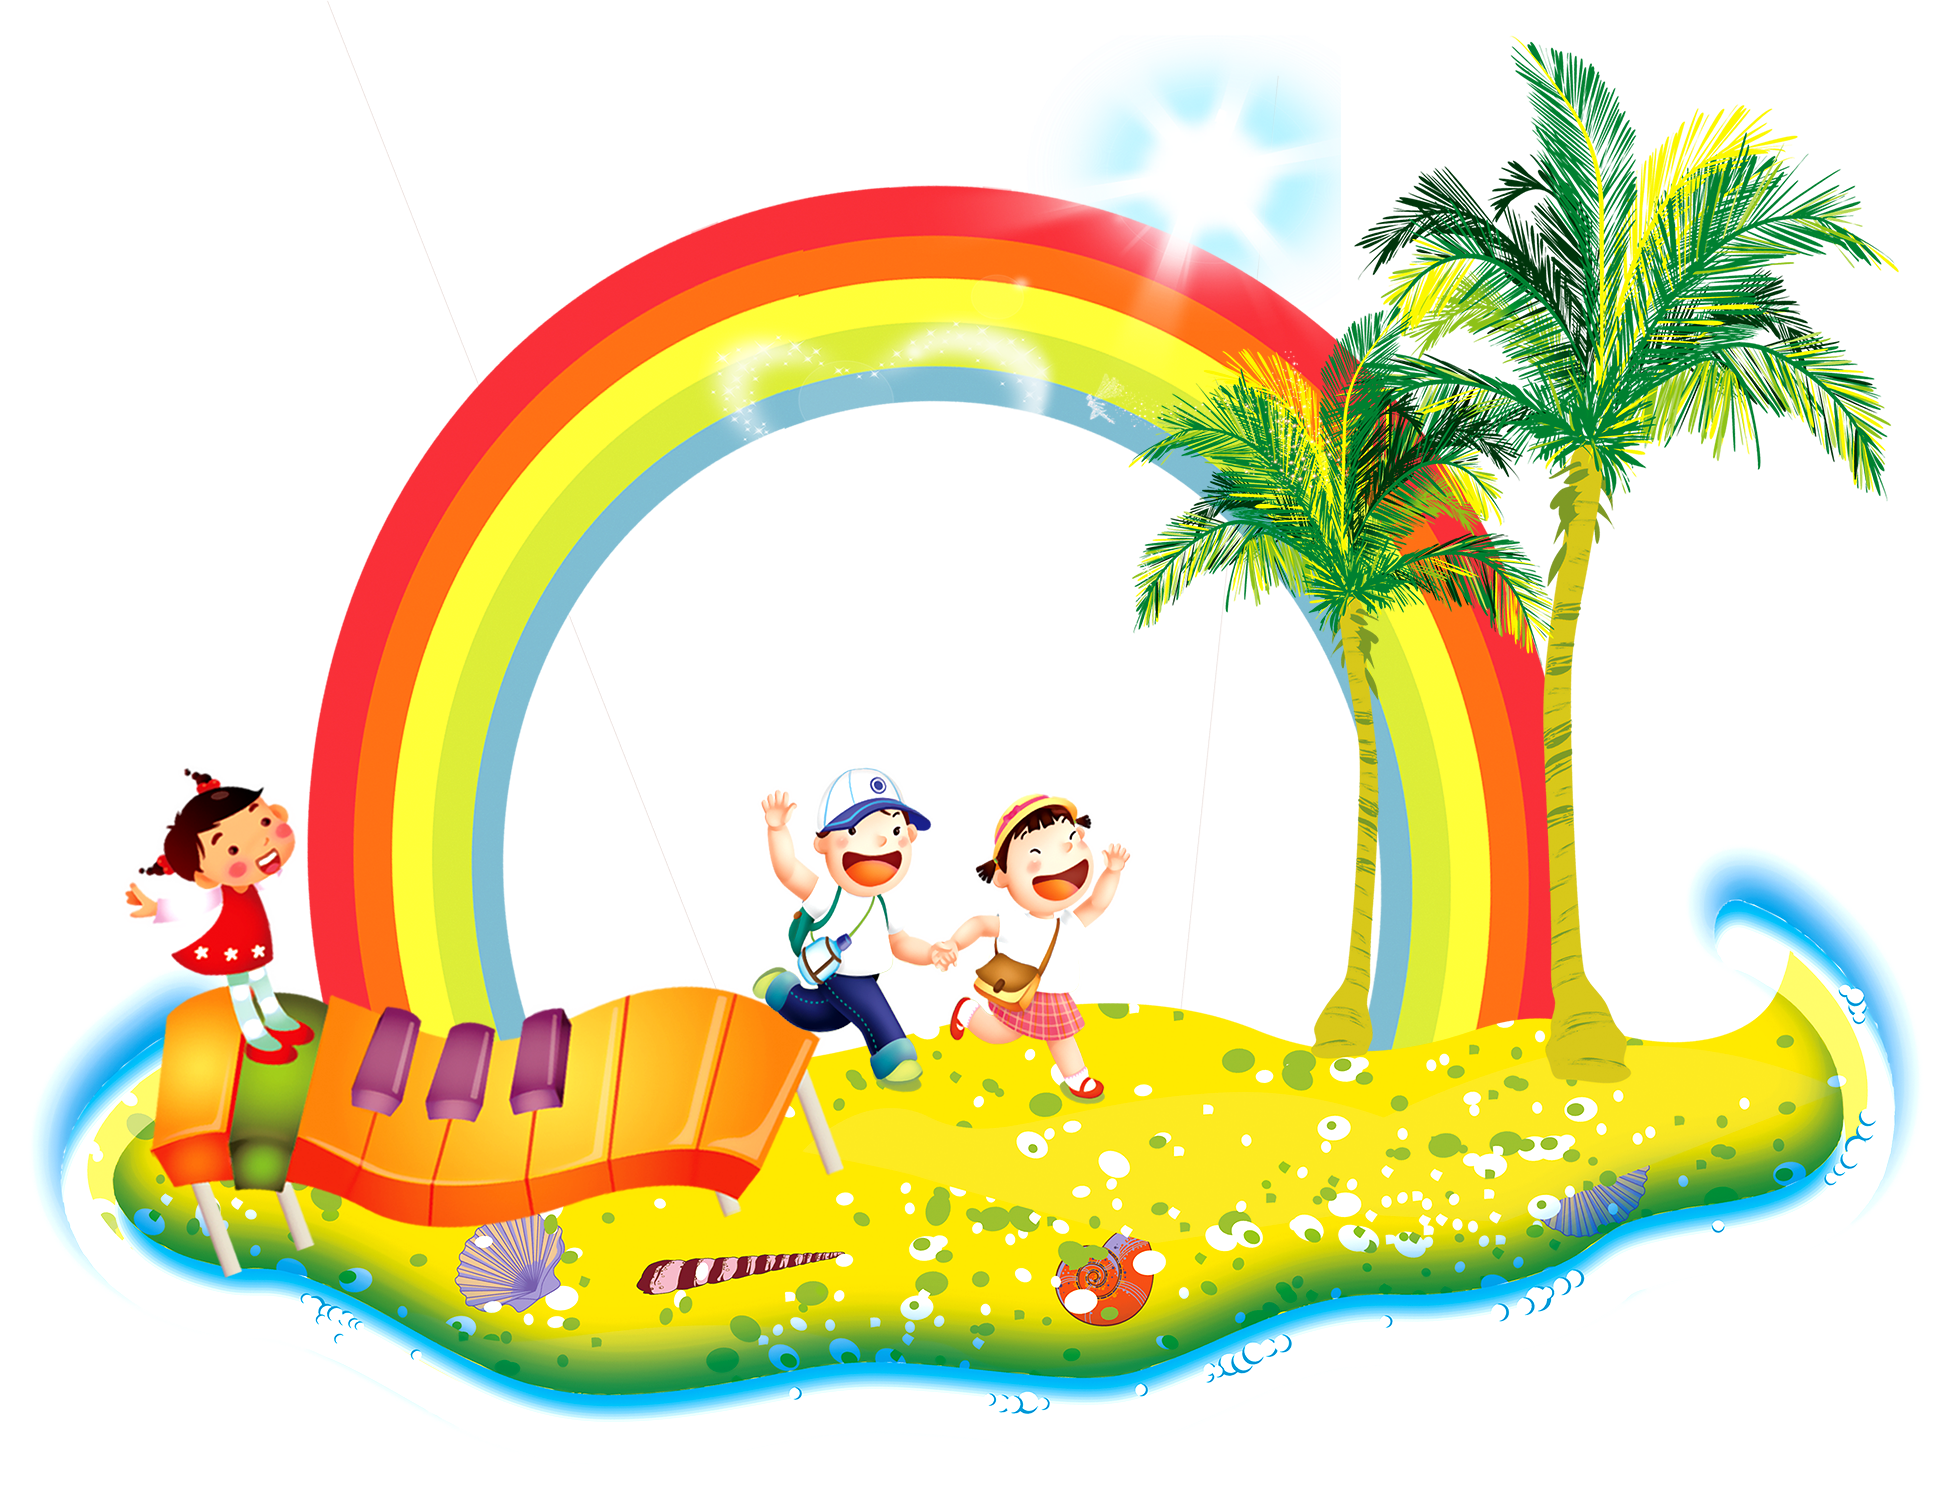 Rainbow tree clipart free library Ides Dimages De Coconut Tree Cartoon Drawing free library